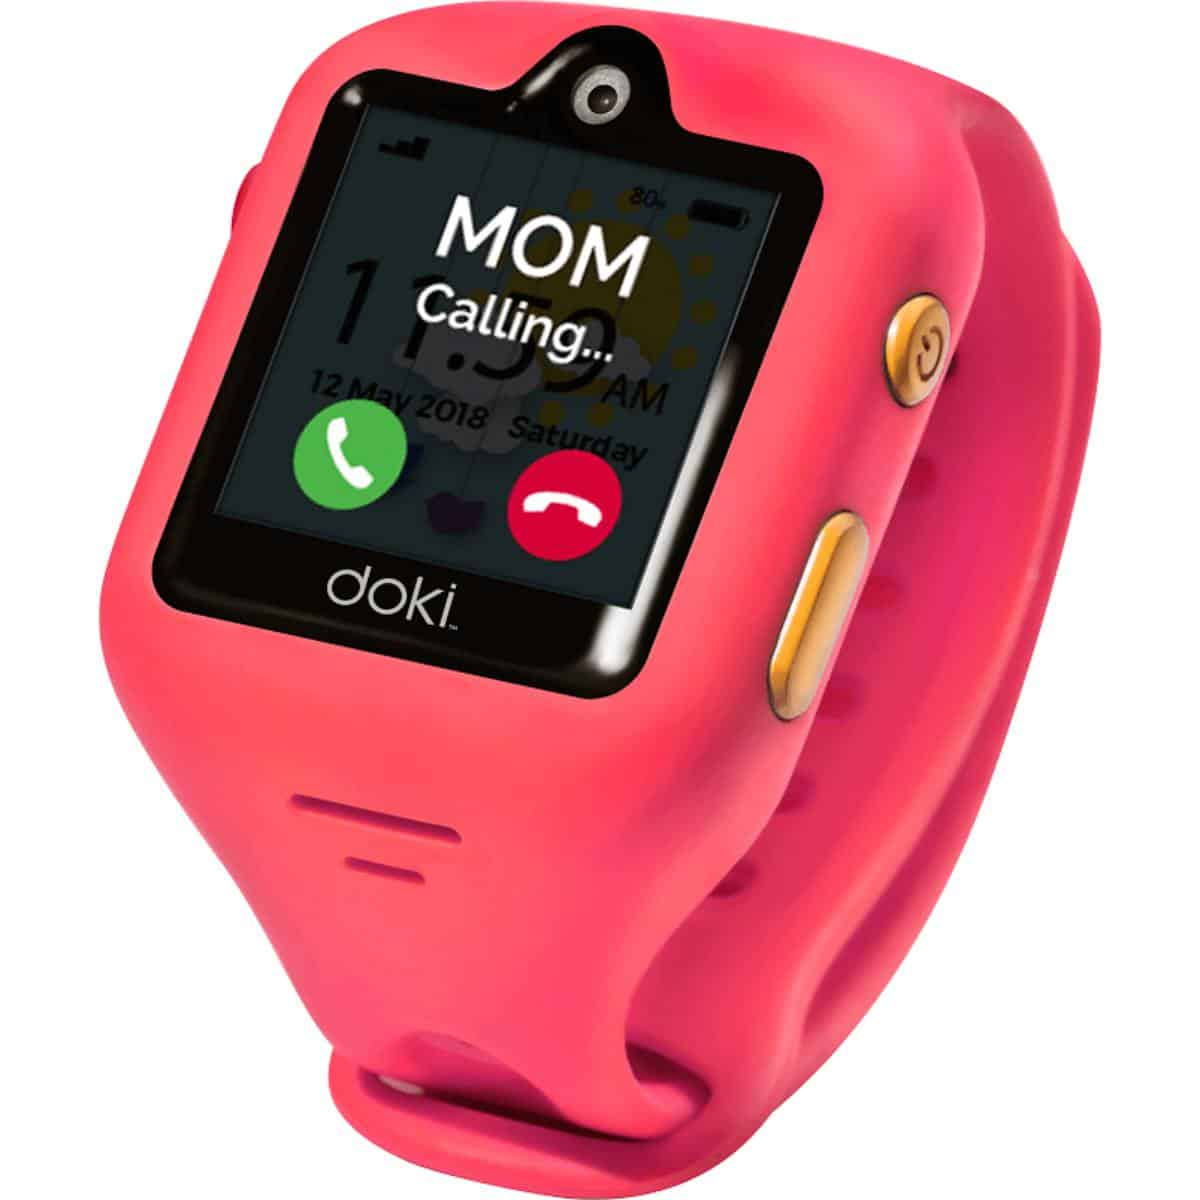 Doki Watch S | Best GPS-Enabled Kids Watches | Child Safety For The Modern Family